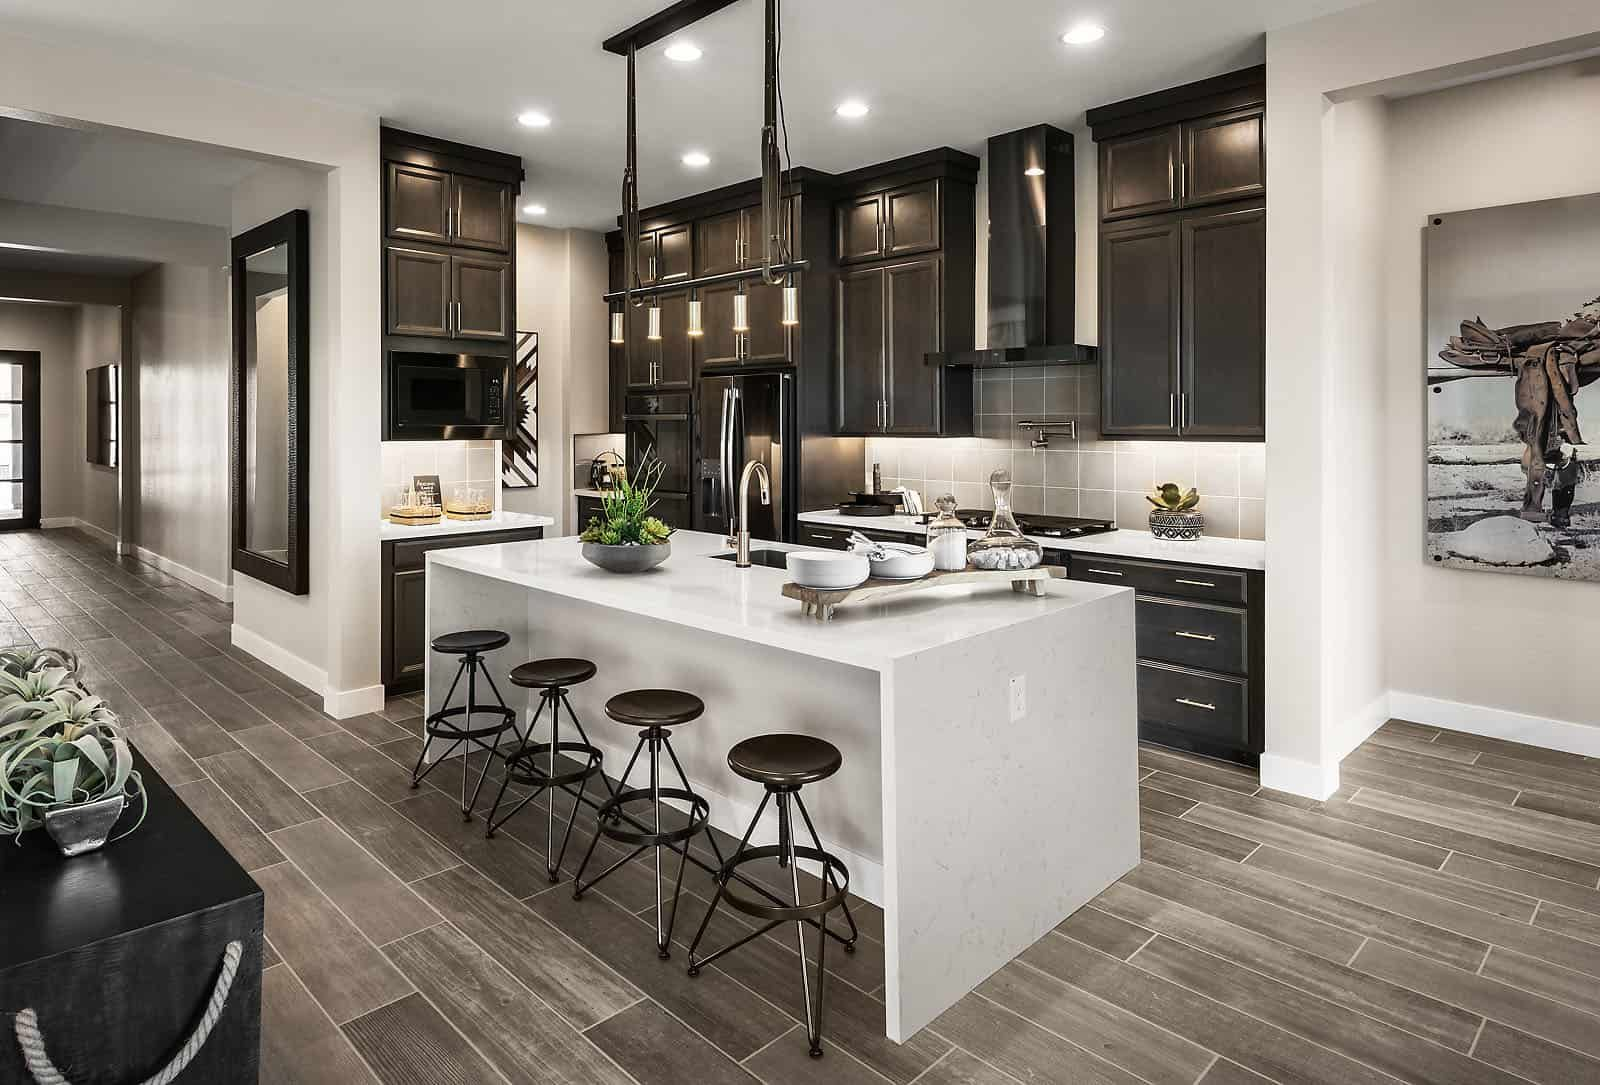 Kitchen featured in the Rosemary By Tri Pointe Homes in Phoenix-Mesa, AZ